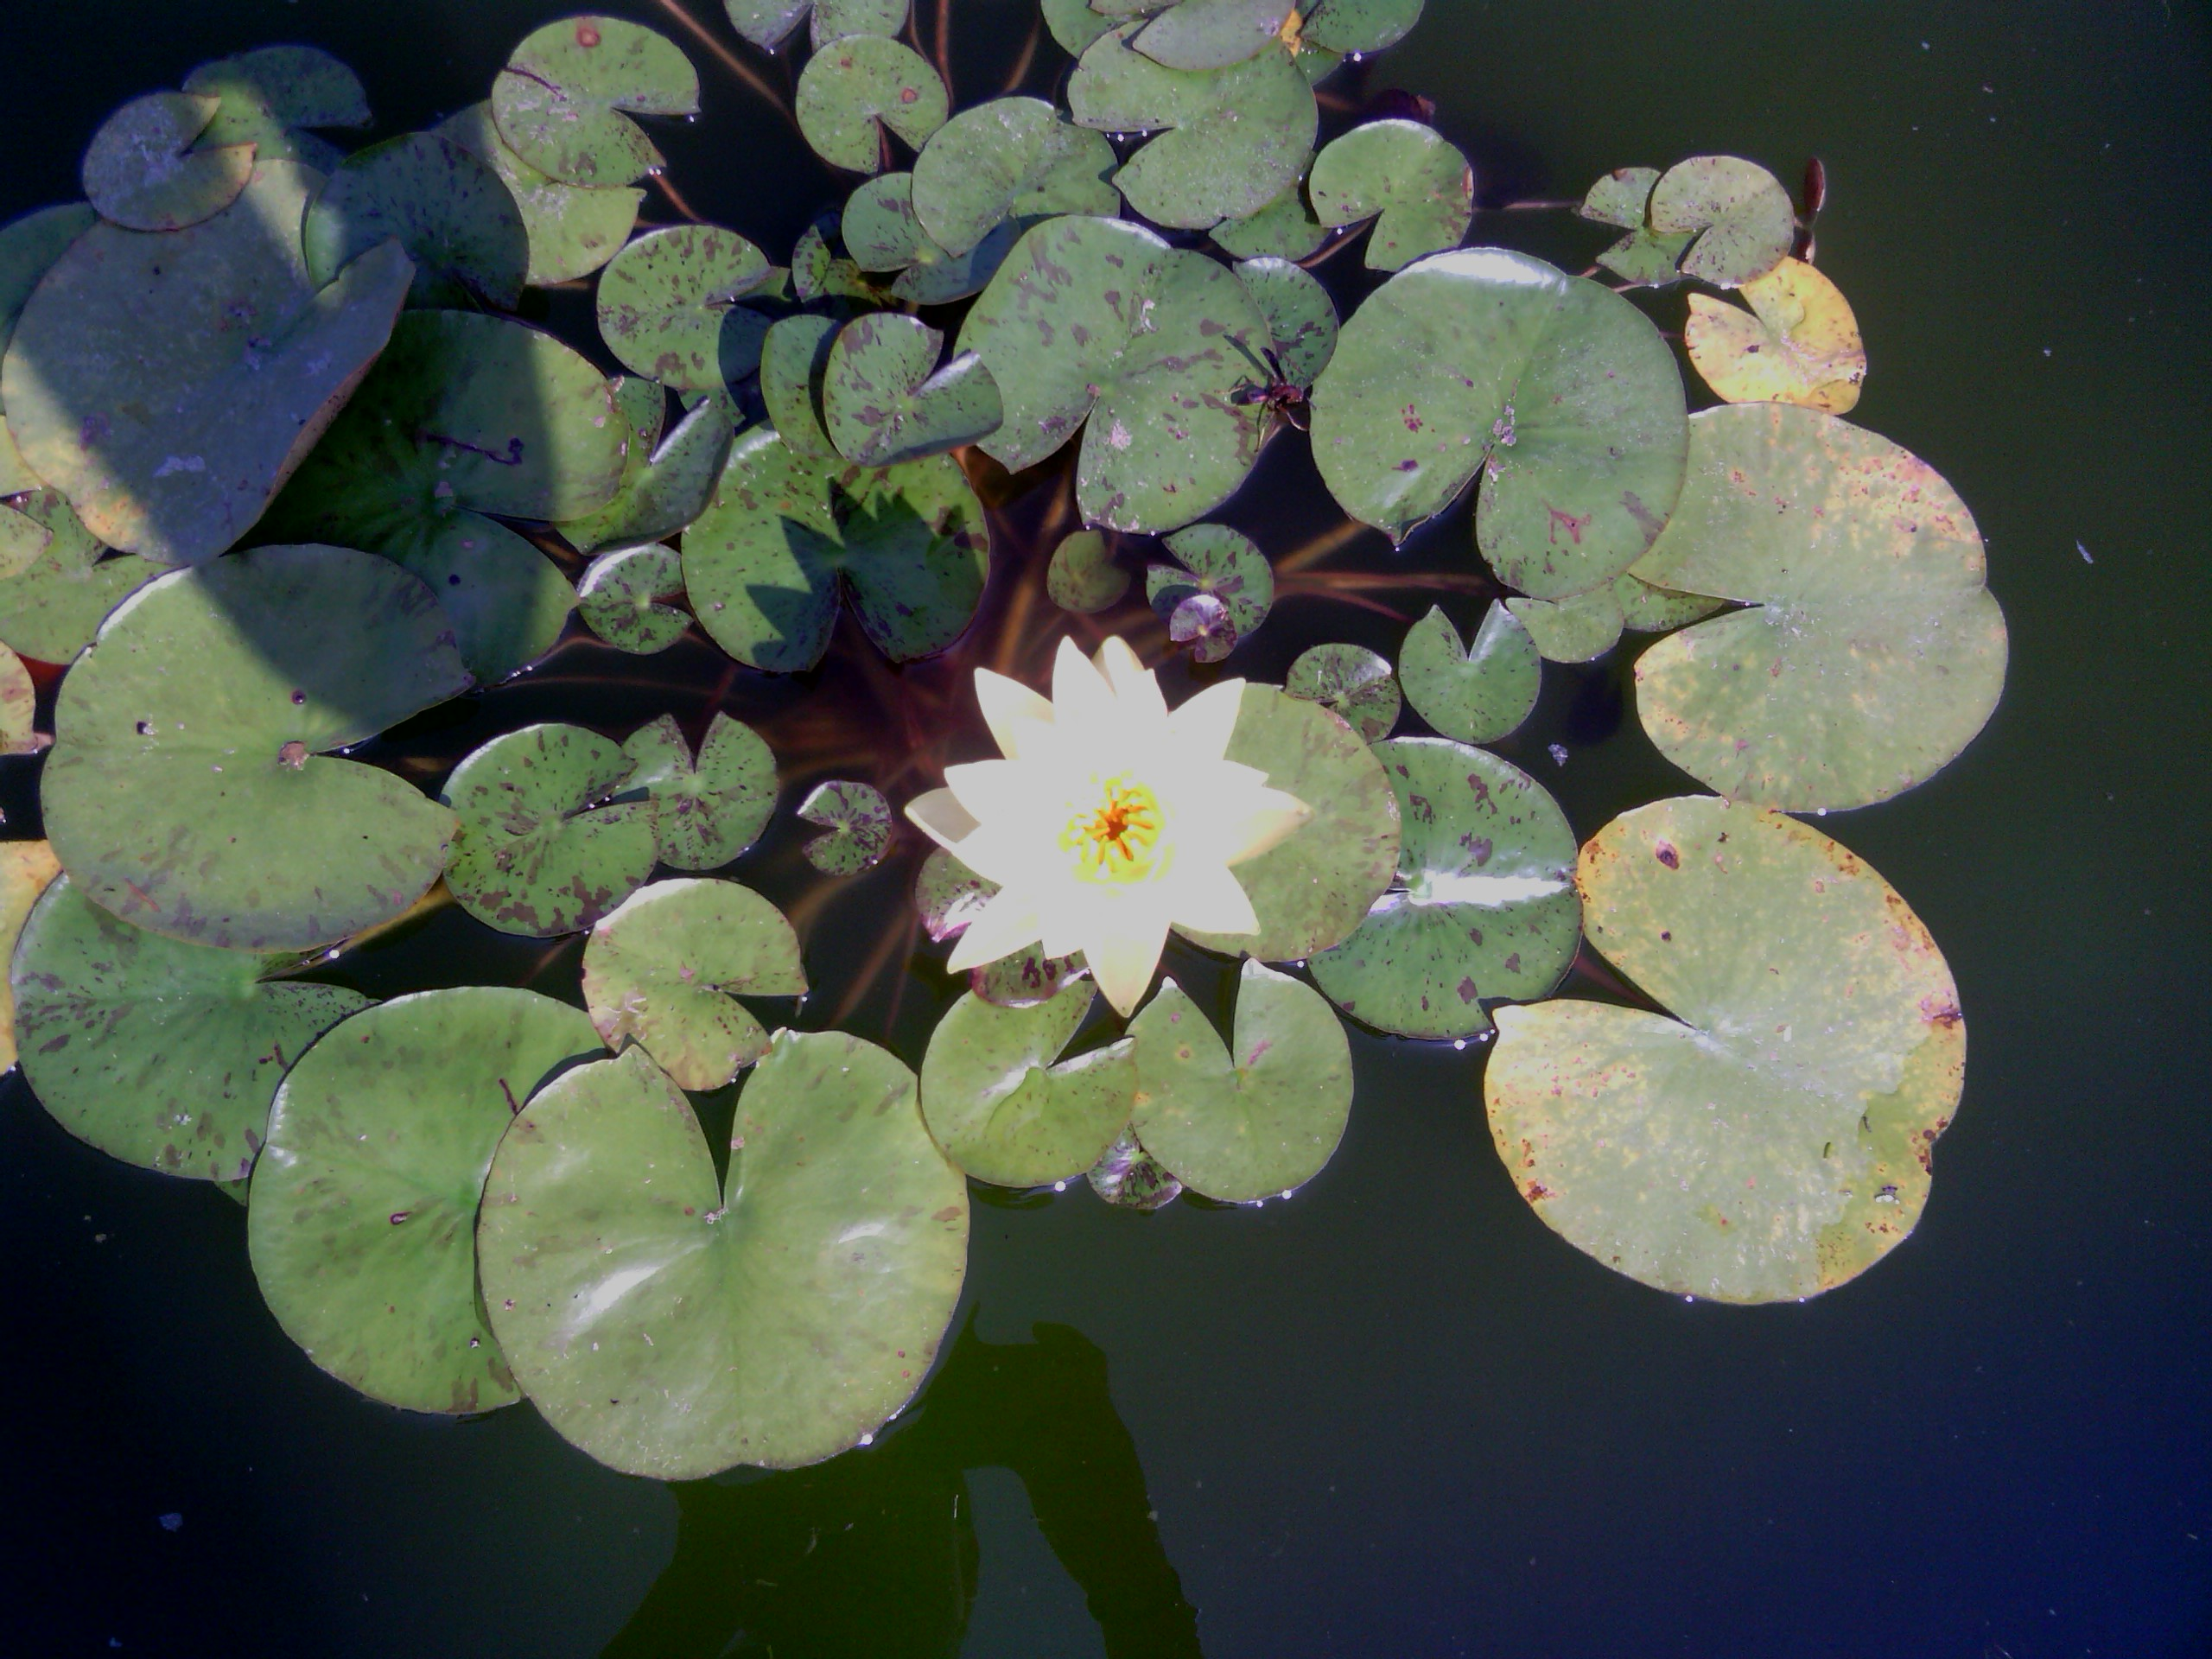 me and my grandma made a water lily pond and this was its first bloom